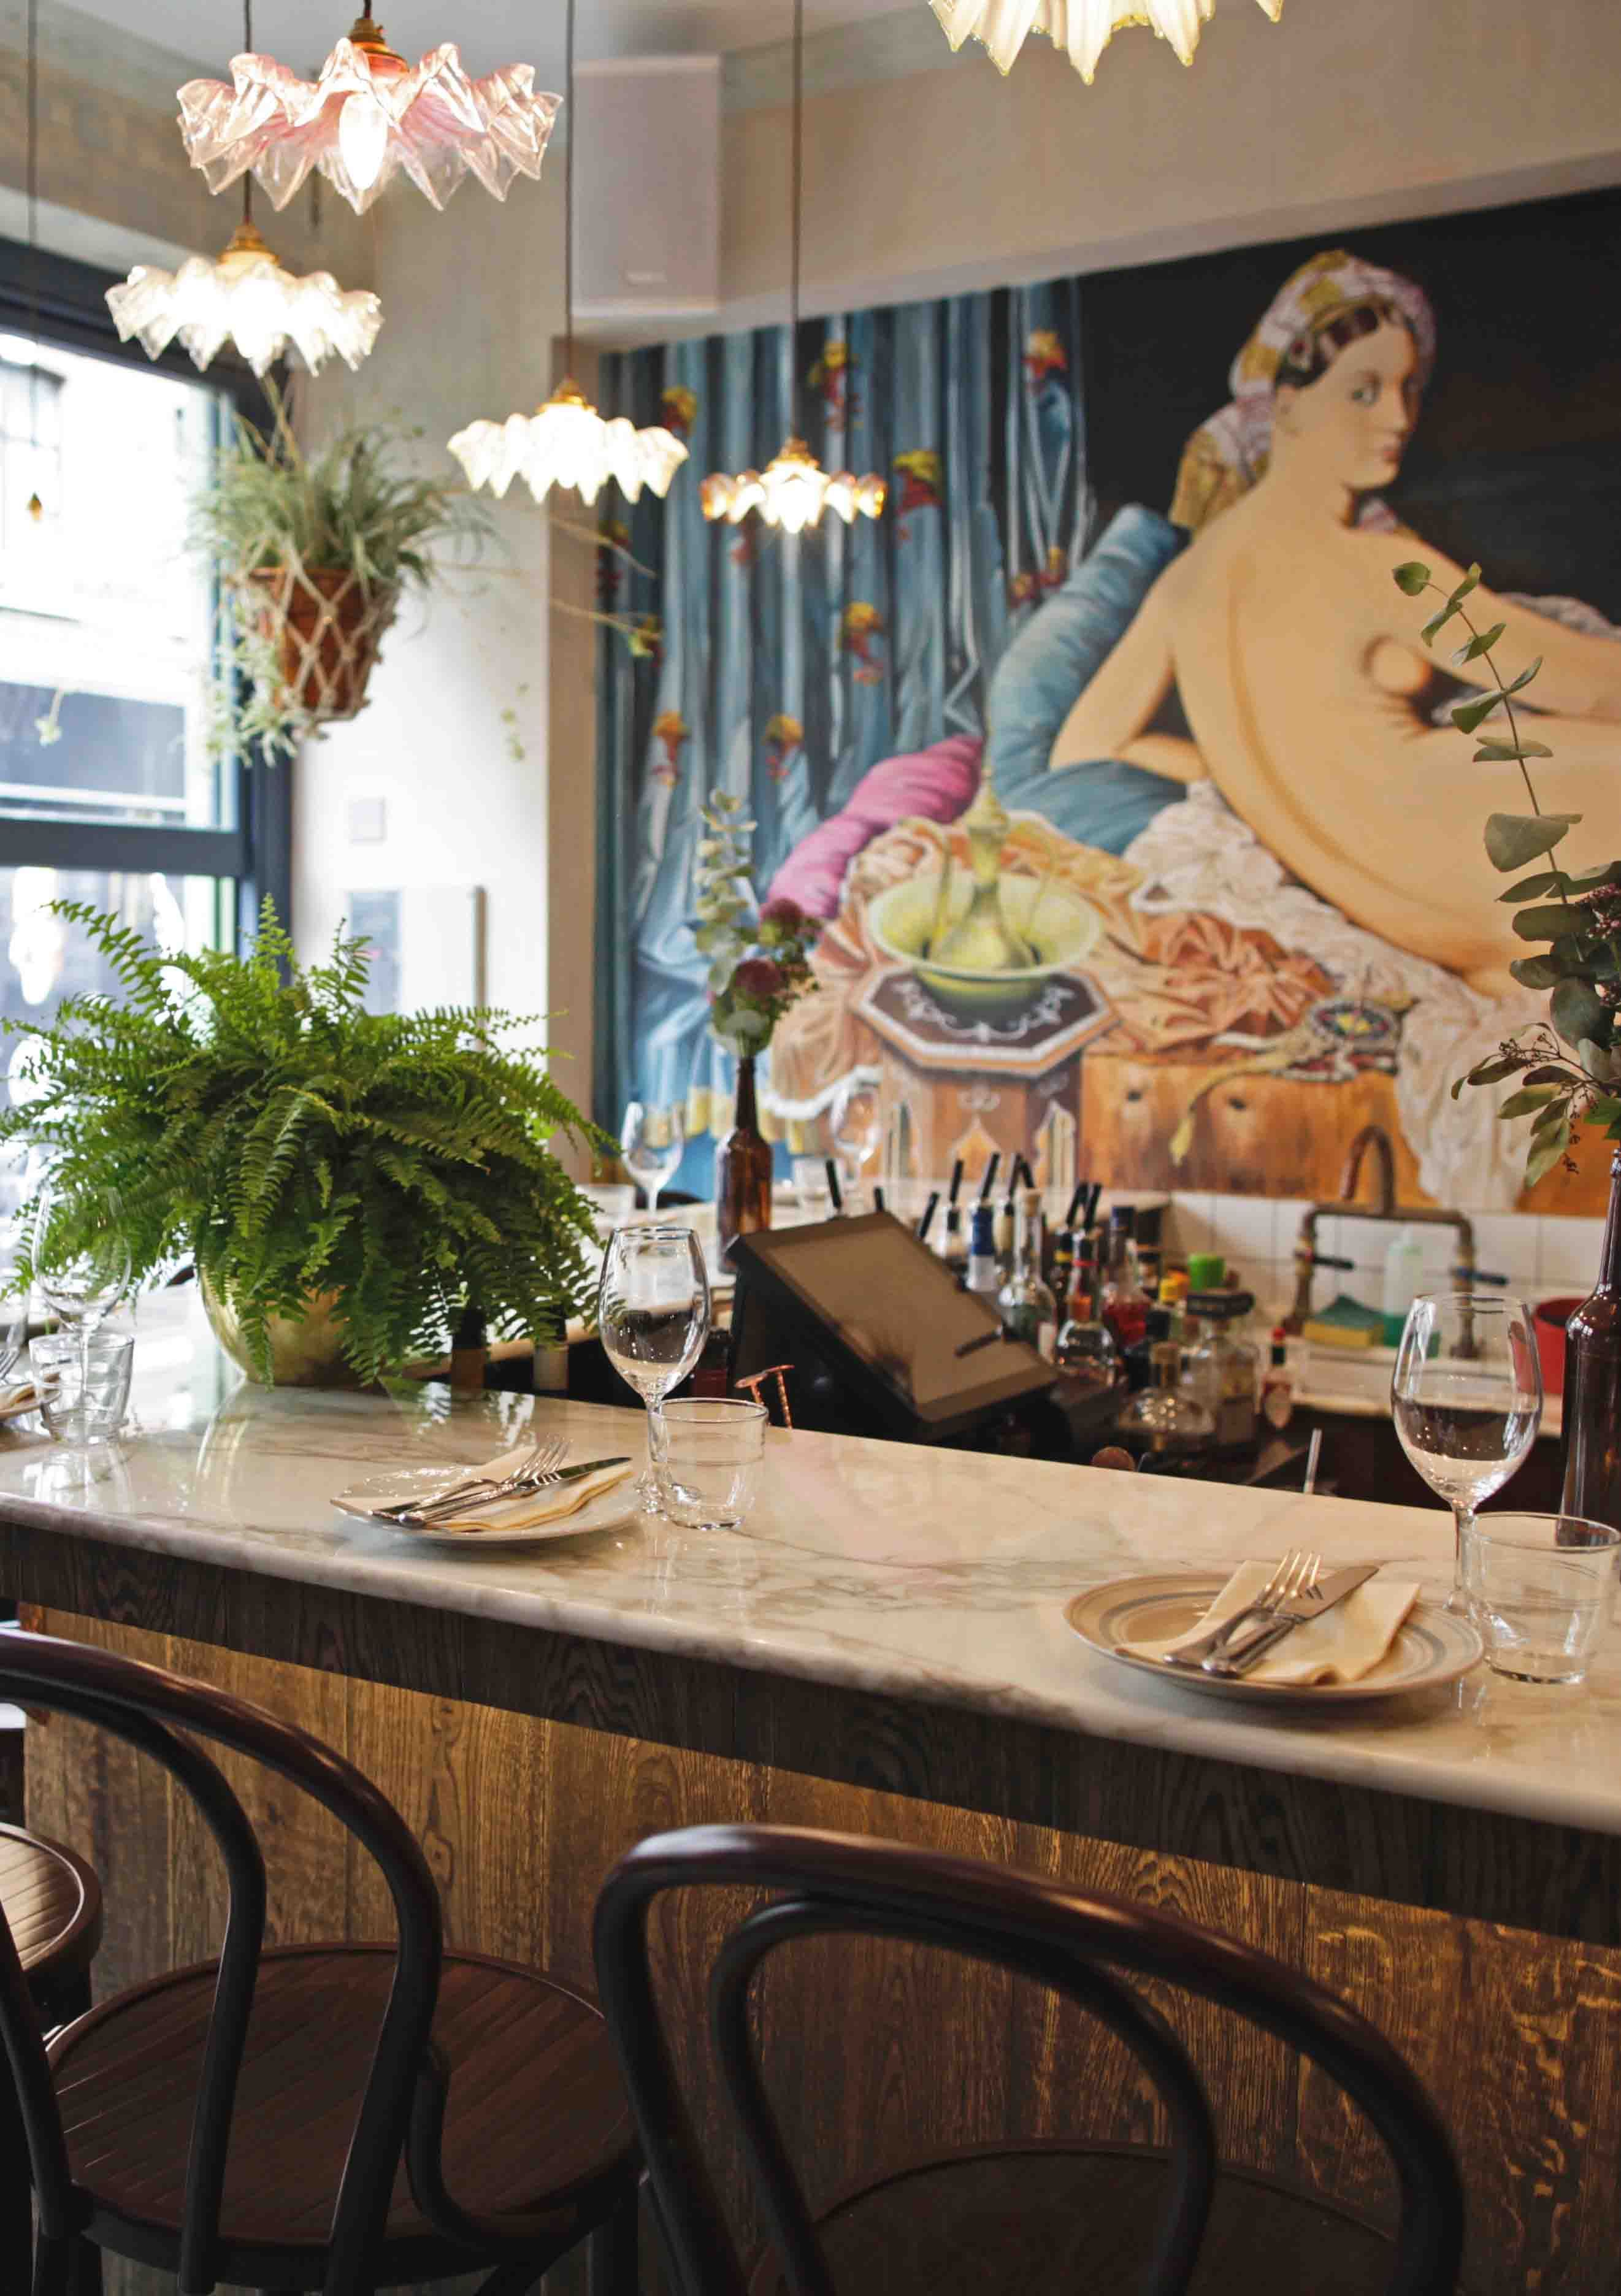 Basement galley walthomstow from 46 for 4 courses a cocktail basement galley walthomstow from 46 for 4 courses a cocktail up to 4 people london restaurants pinterest london restaurants and restaurants malvernweather Image collections